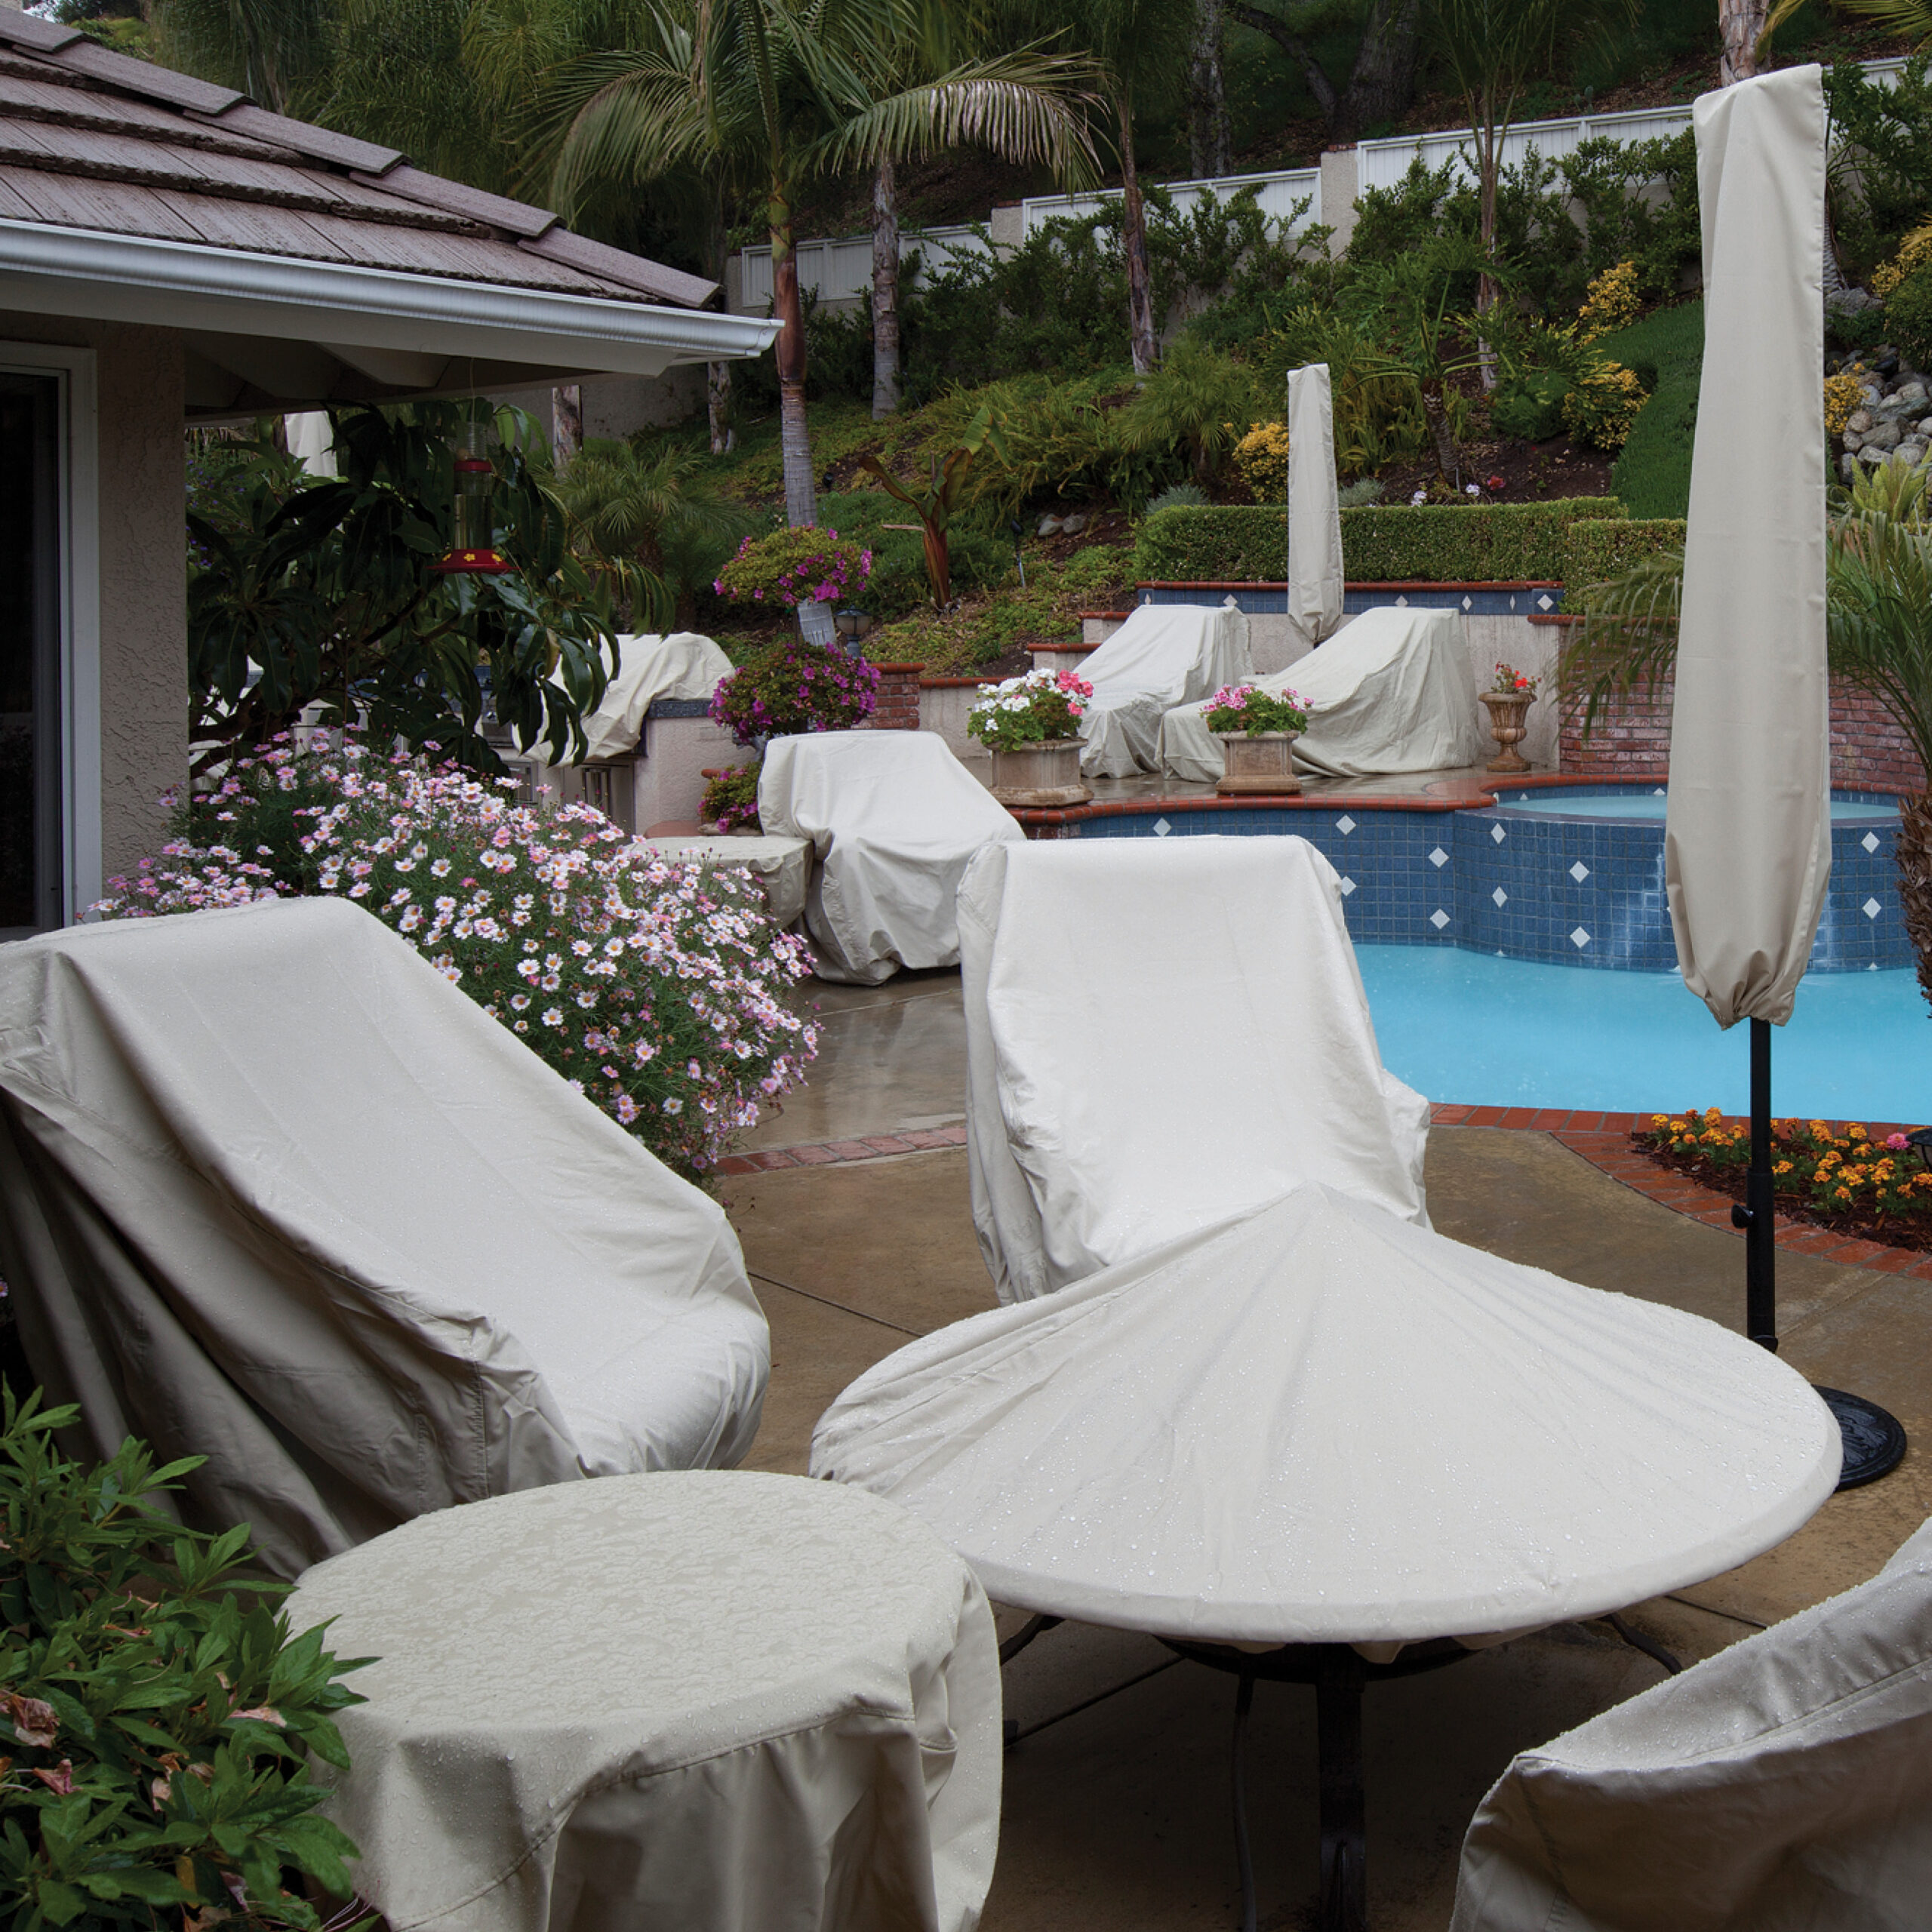 treasure garden protective furniture cover for large lounge chairs